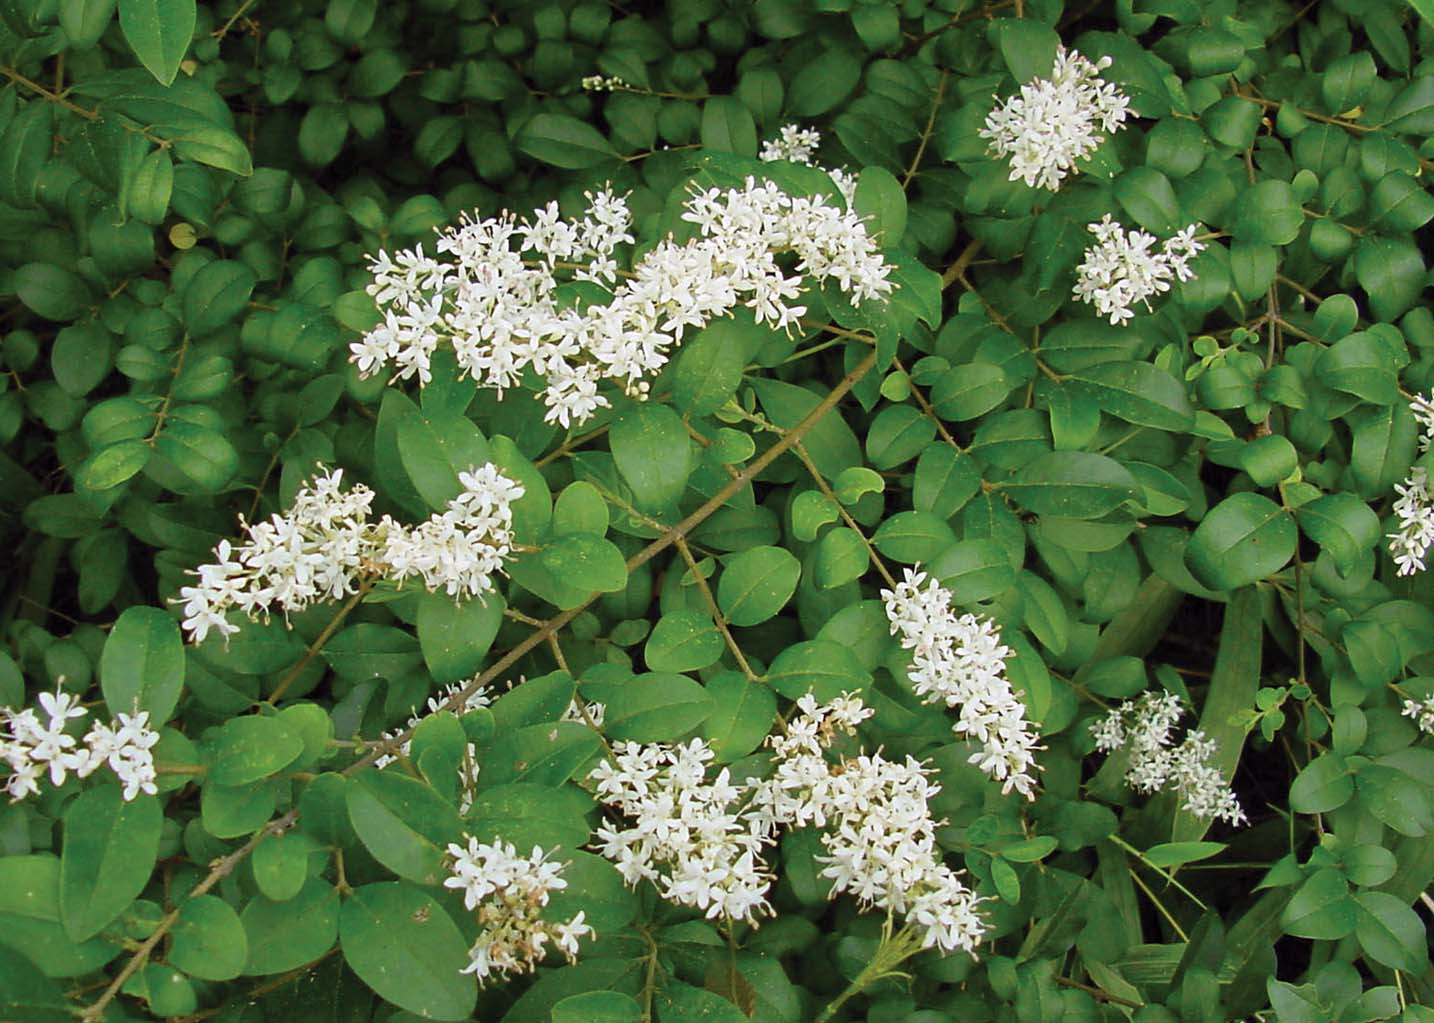 Chinese Privet: A Biological Invader in Louisiana's Forests